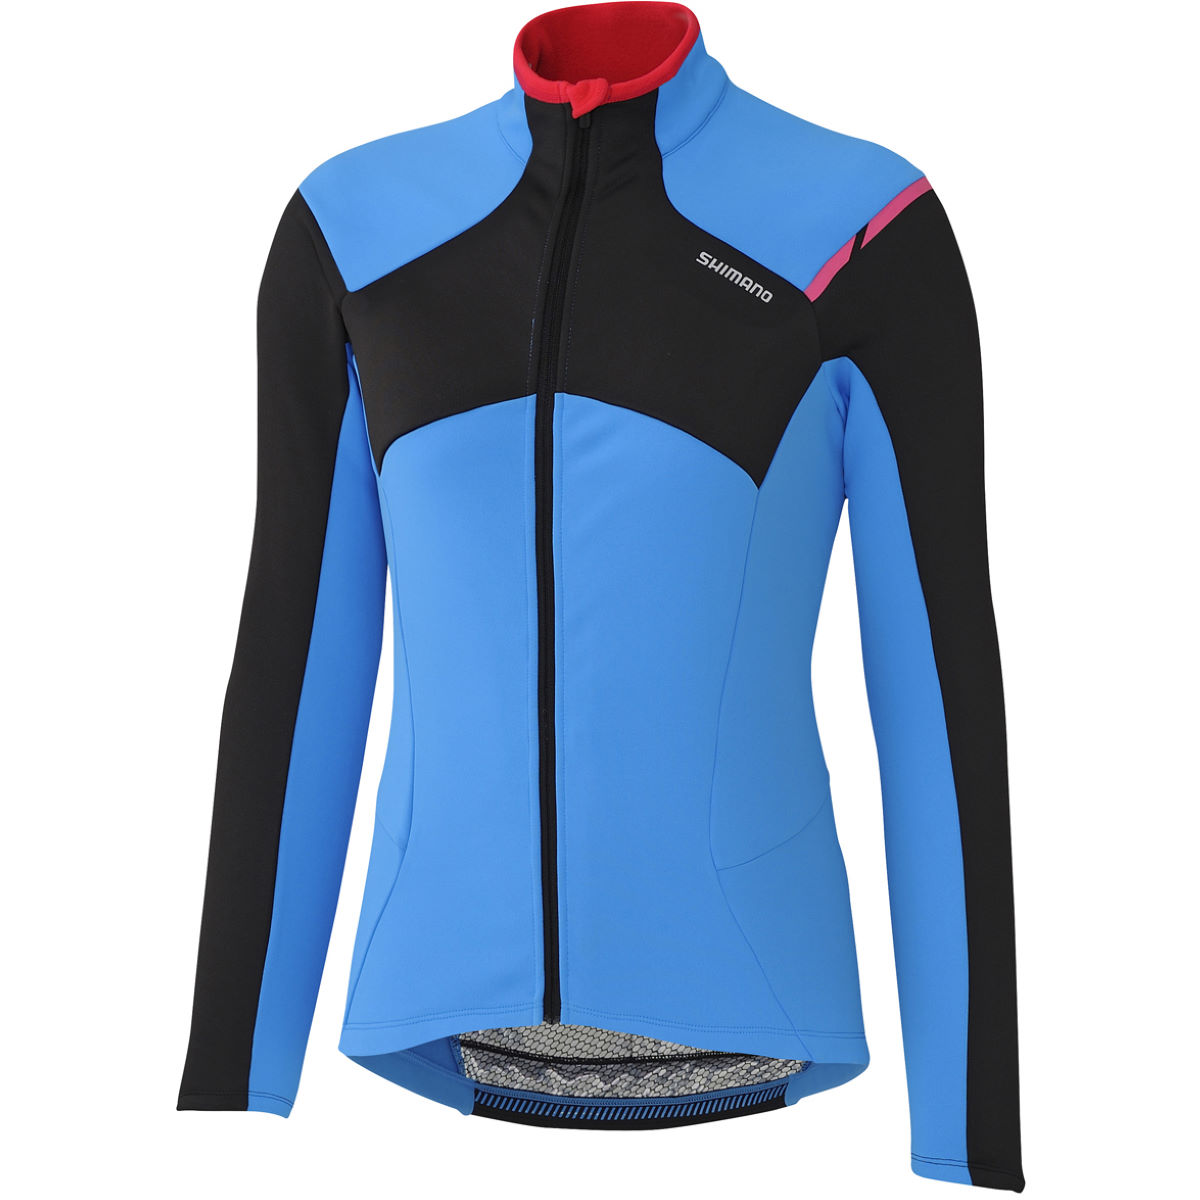 Veste Femme Shimano Performance Windbreak - Large Bleu Vestes